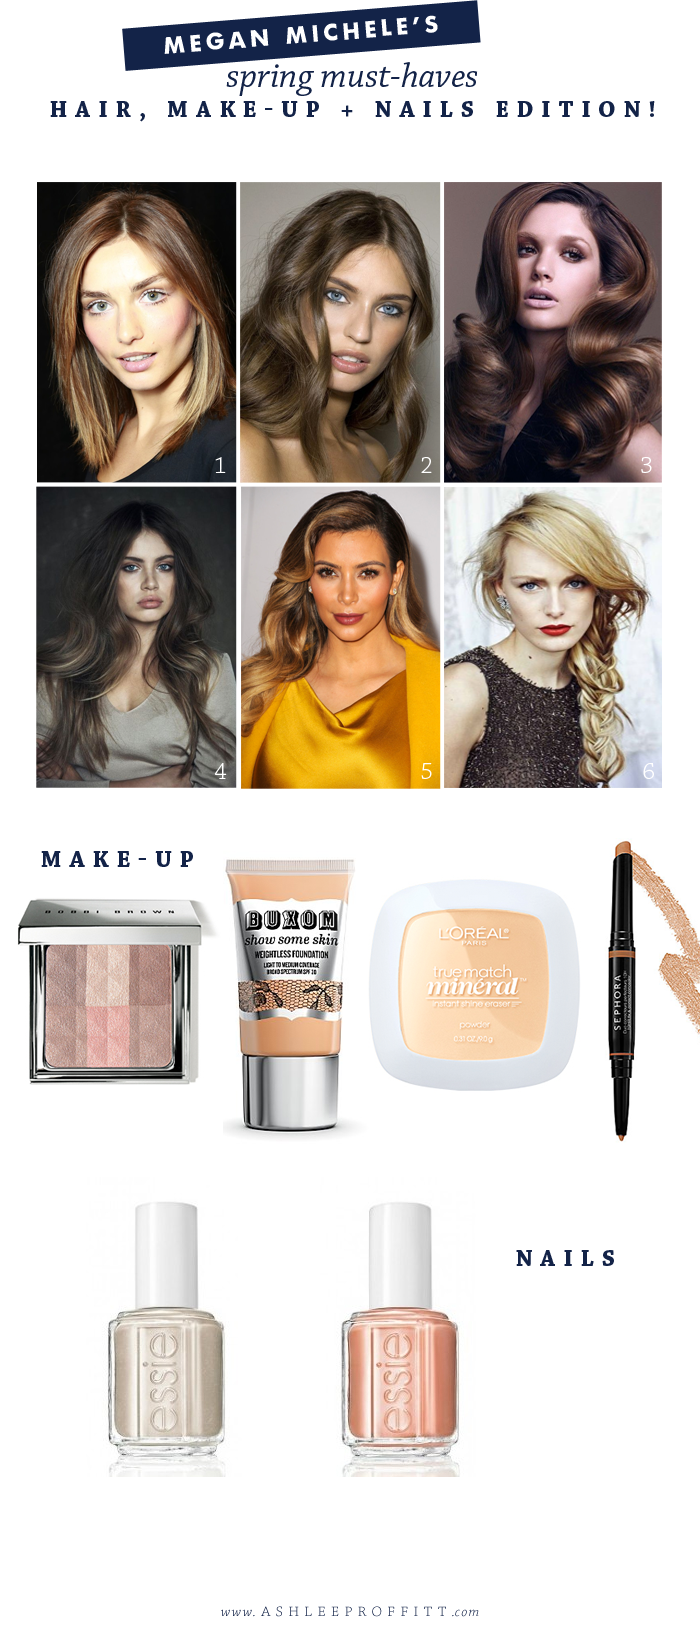 Spring Must-Haves: Hair, Make-up, & Nails | By Megan Michele for Ashlee Proffitt